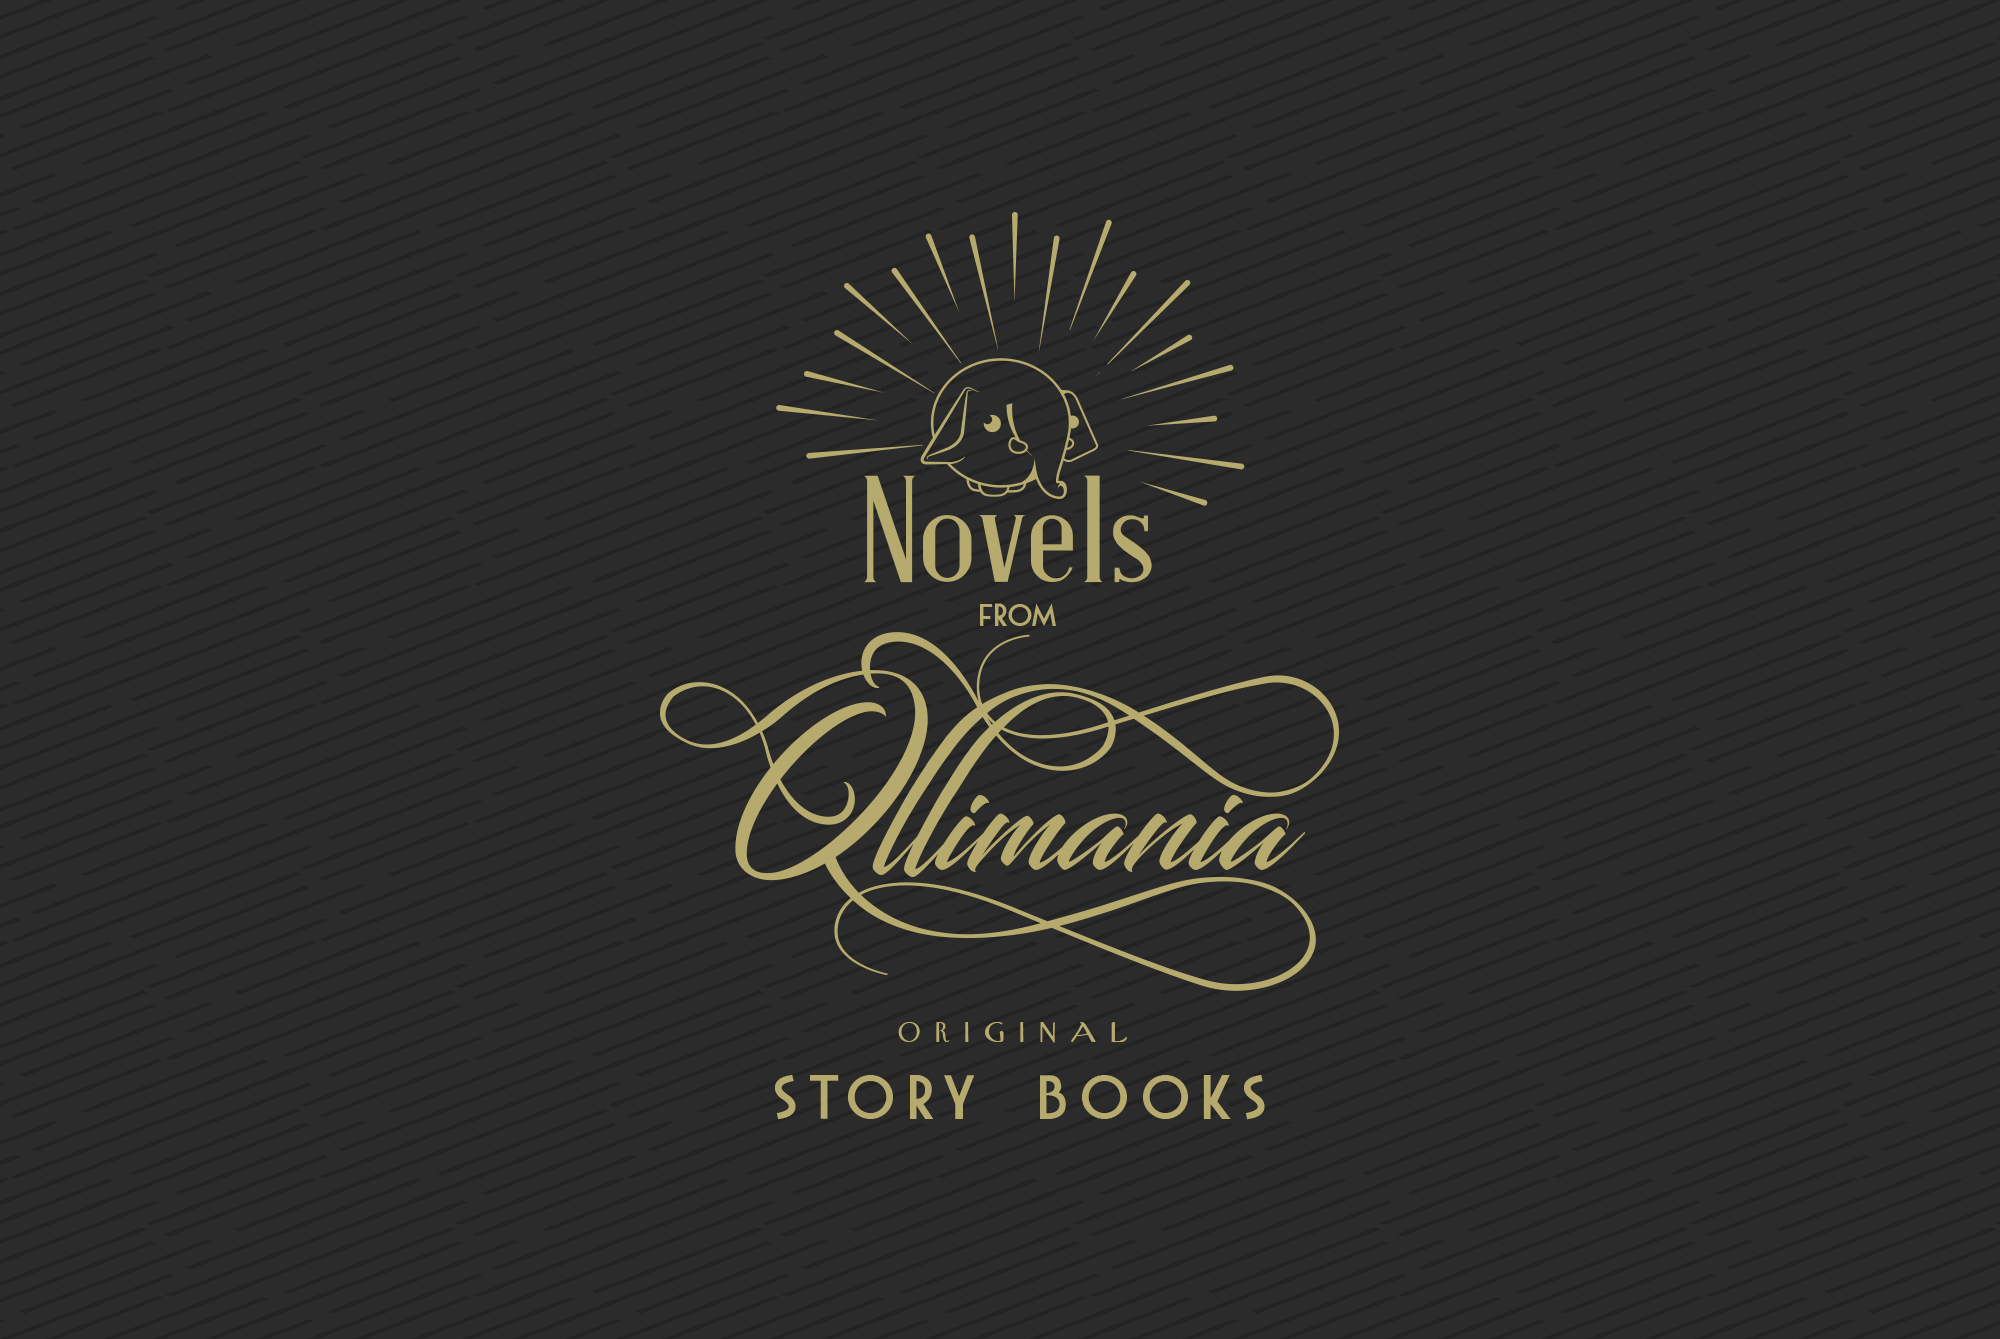 Ollimania books logo